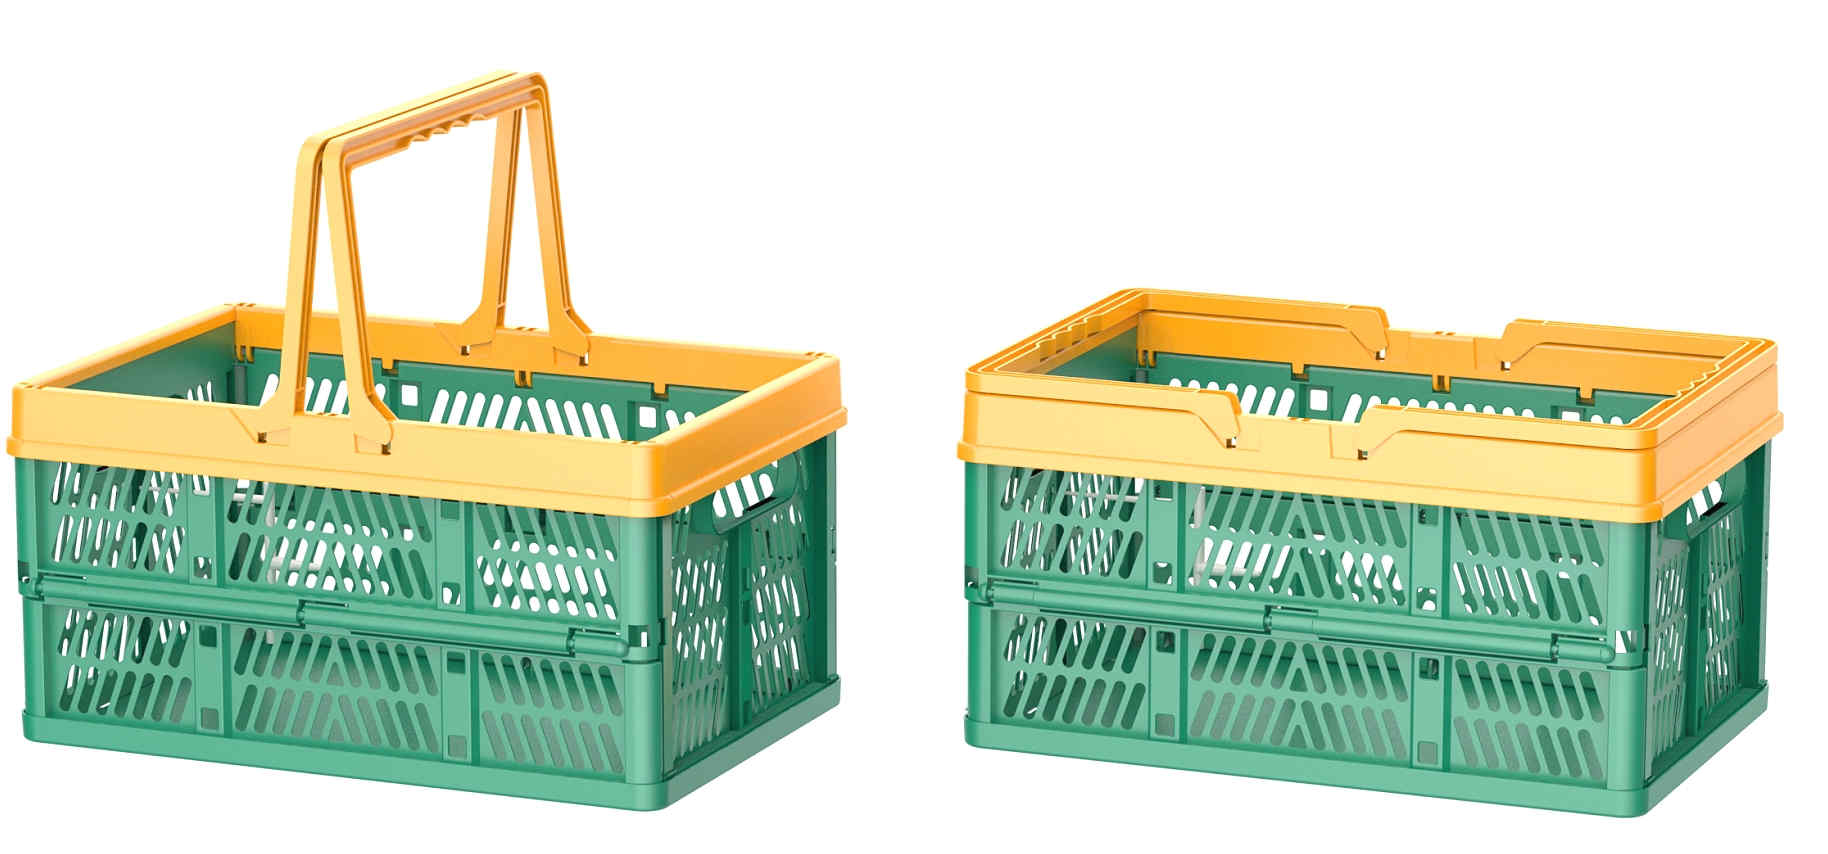 2020 new plastic Folding shopping basket with handles